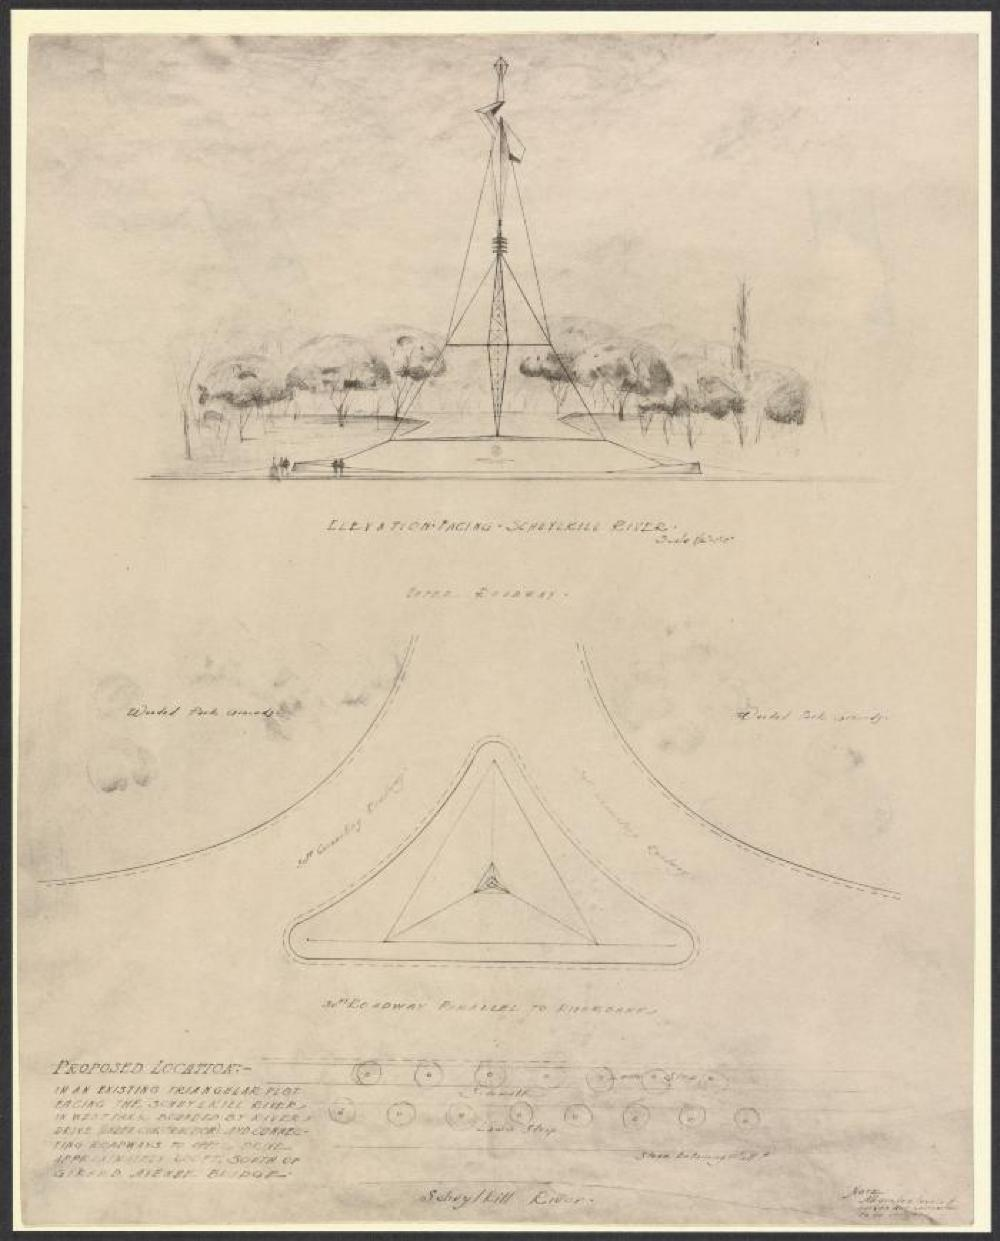 Original proposal of Monument to Ben Franklin